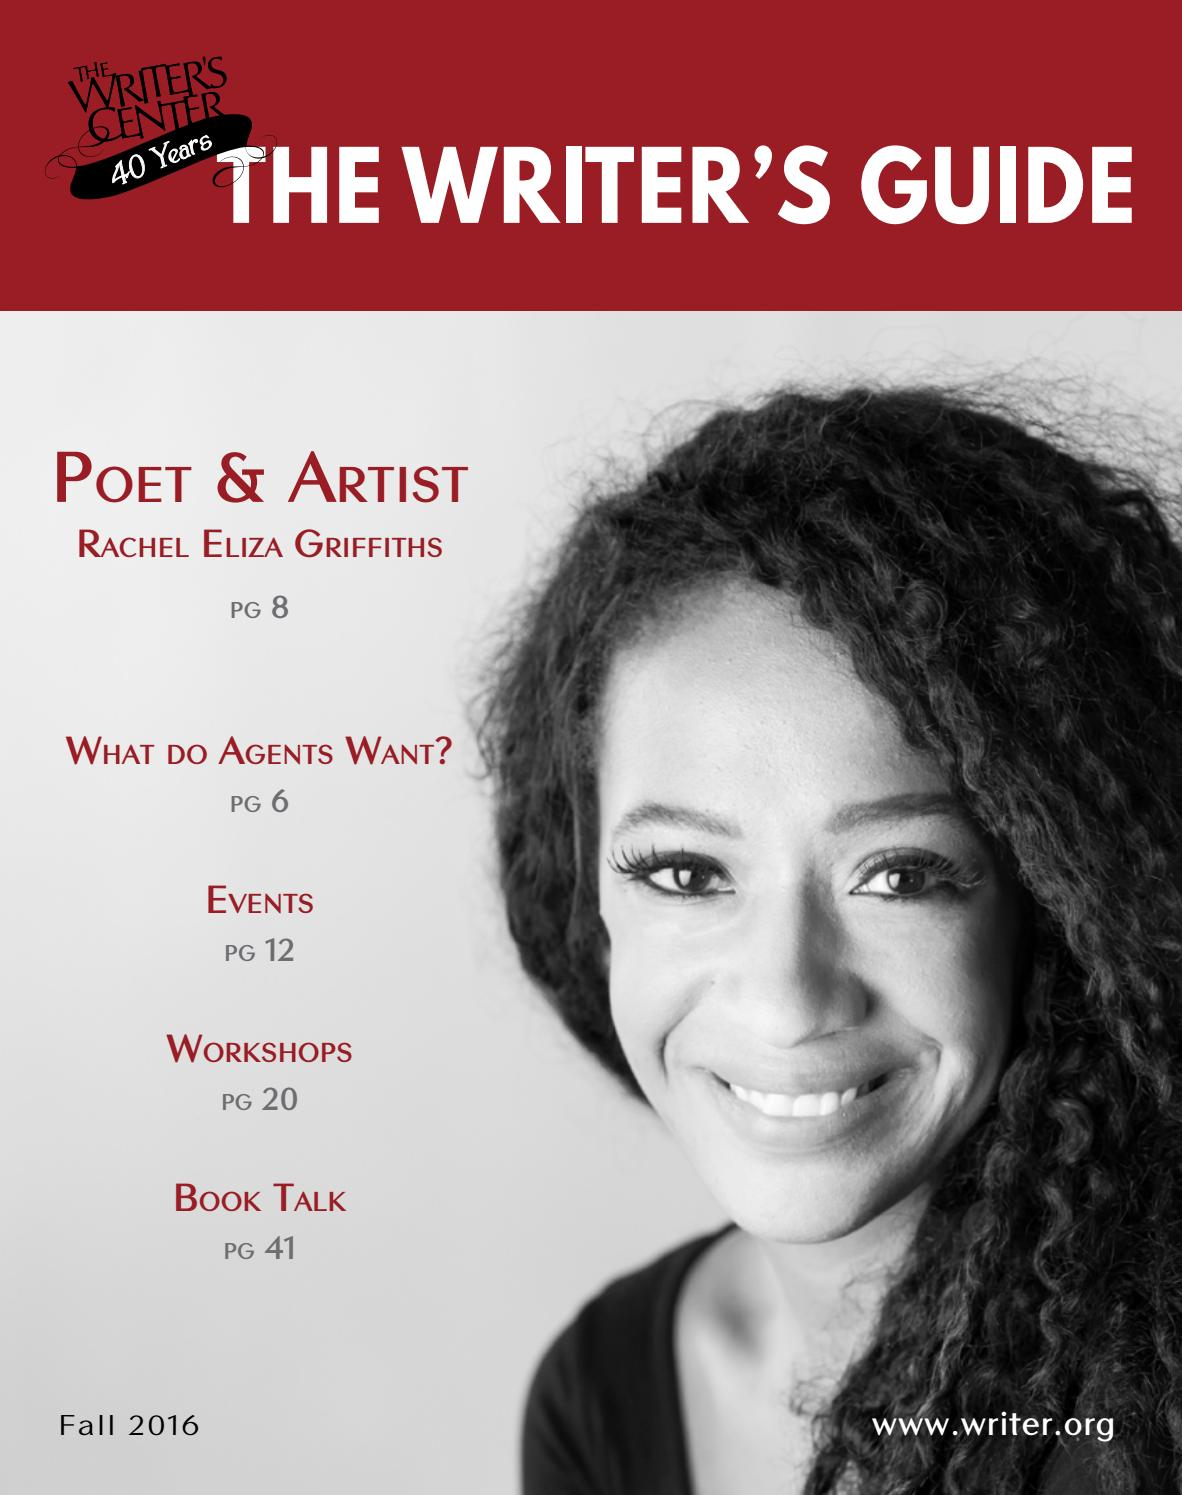 The Writer\'s Guide Fall 2016 by The Writer\'s Center - issuu